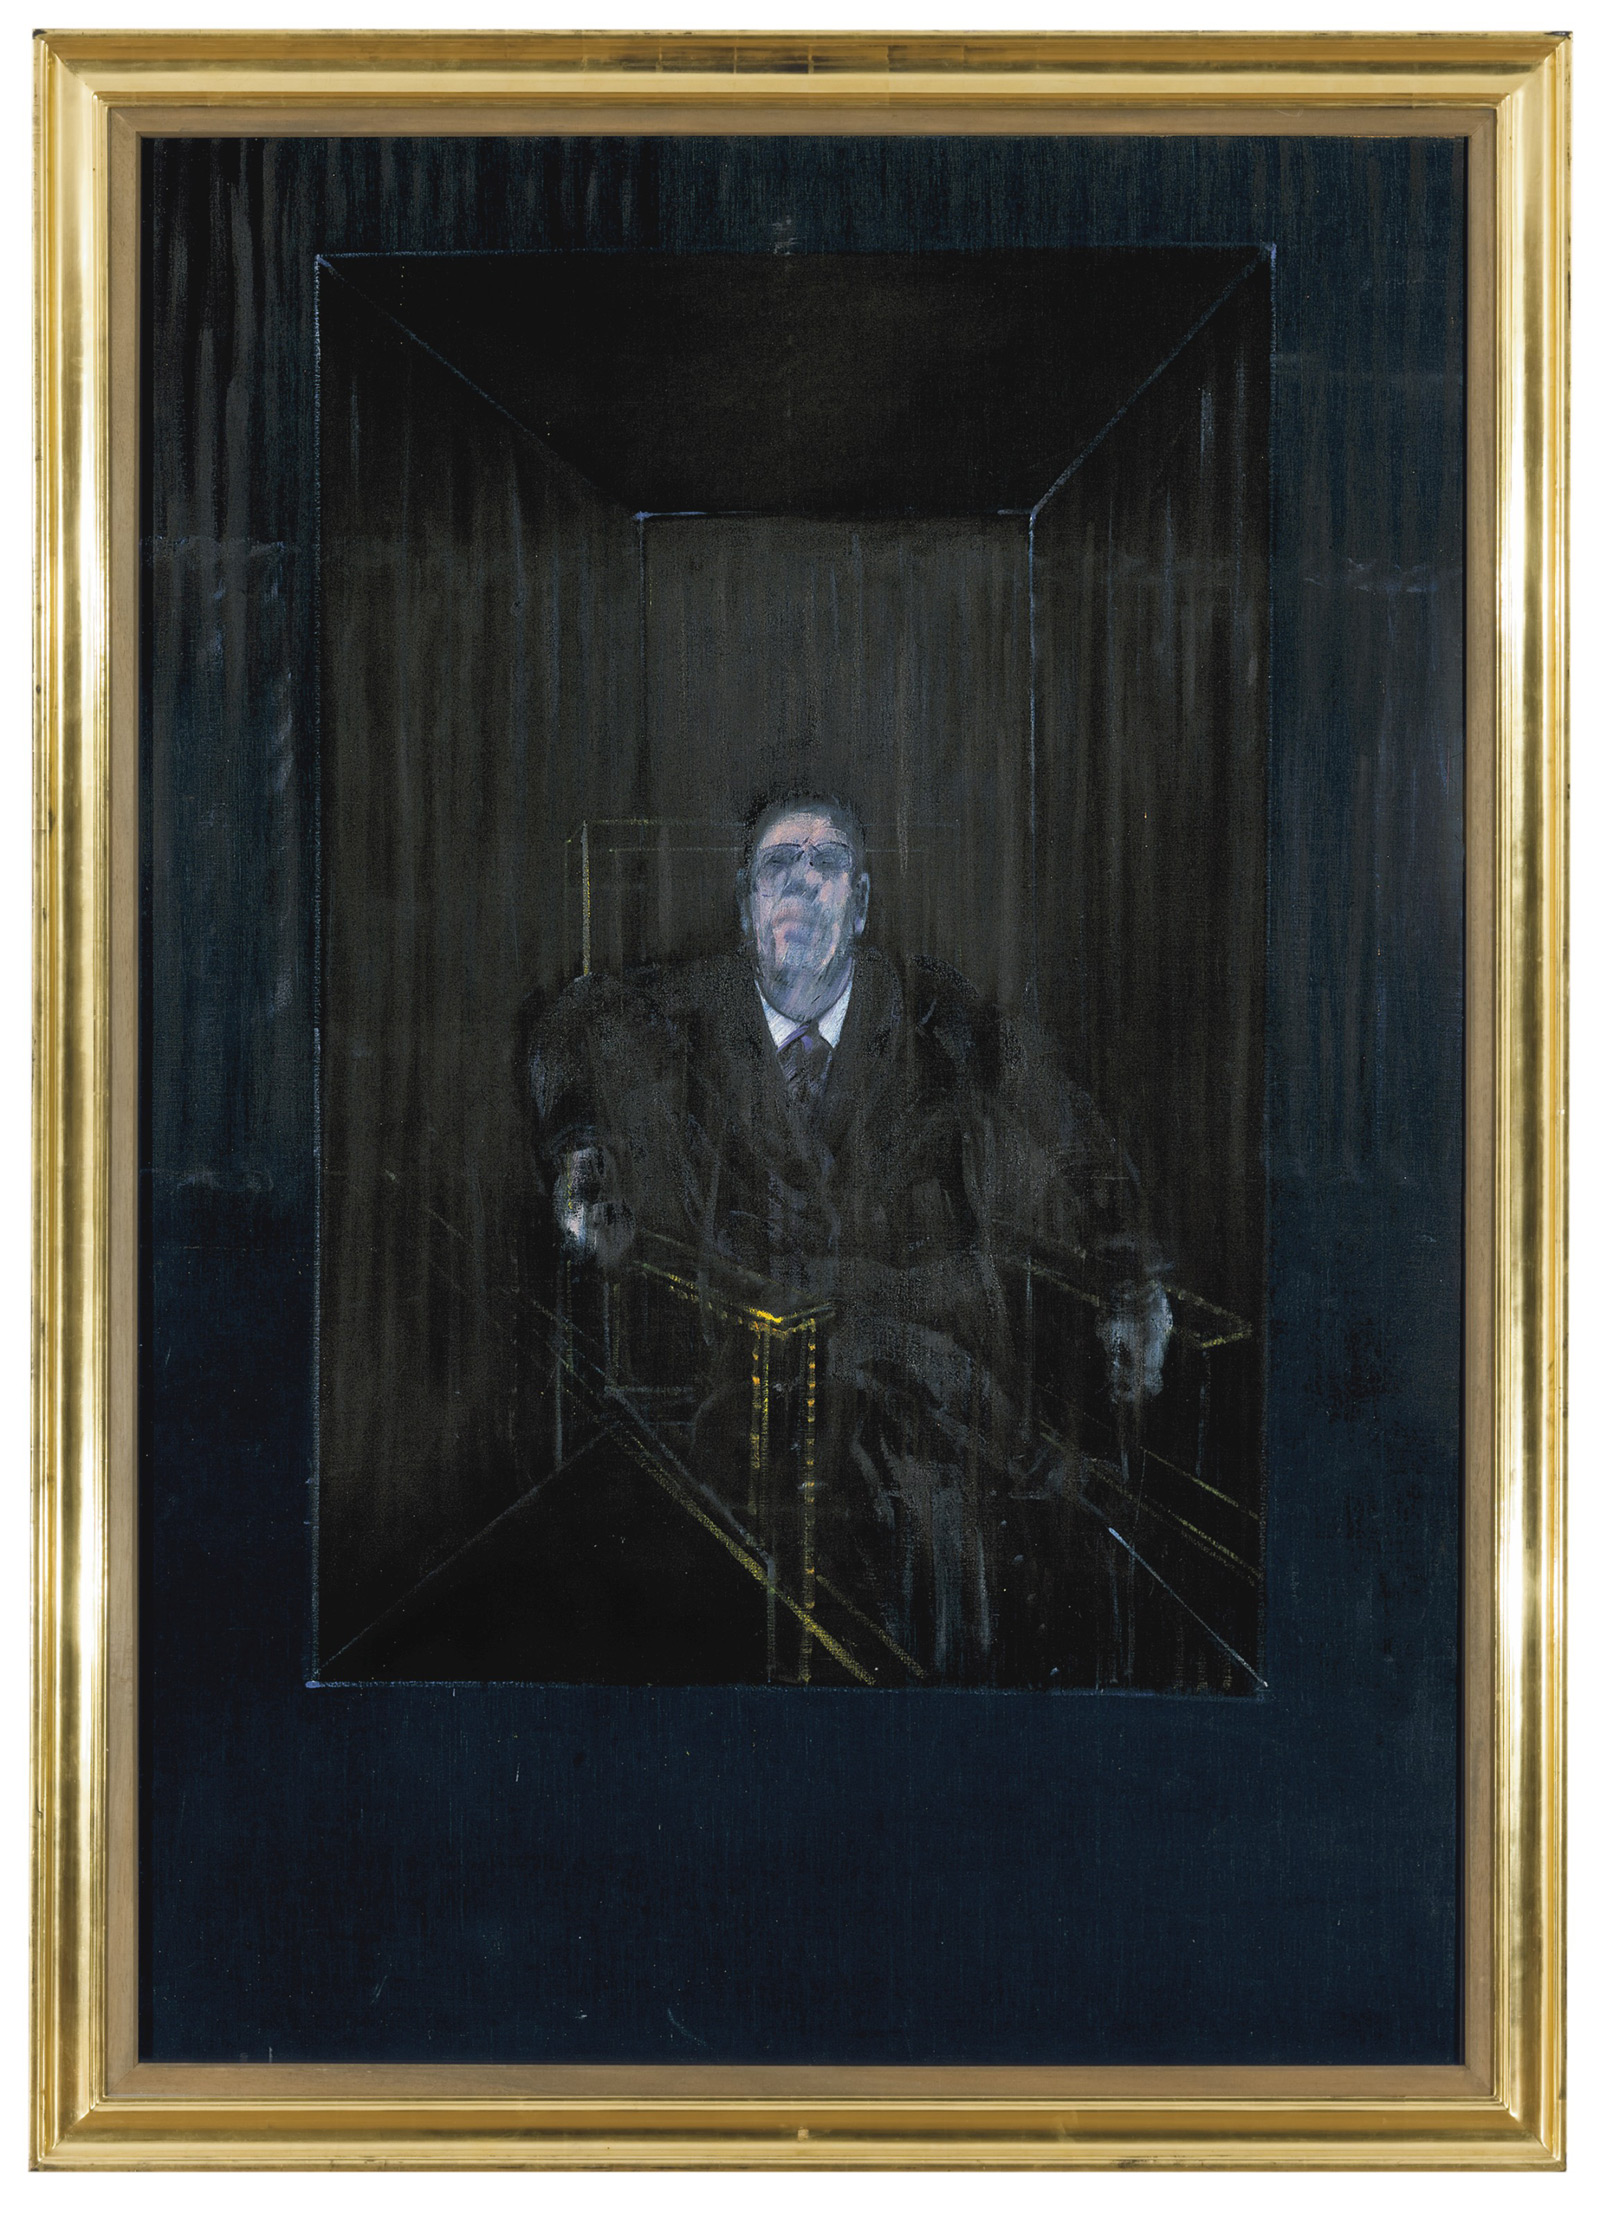 Francis Bacon&#8217;s Study for a Portrait Sold for $28 Million at Christie&#8217;s